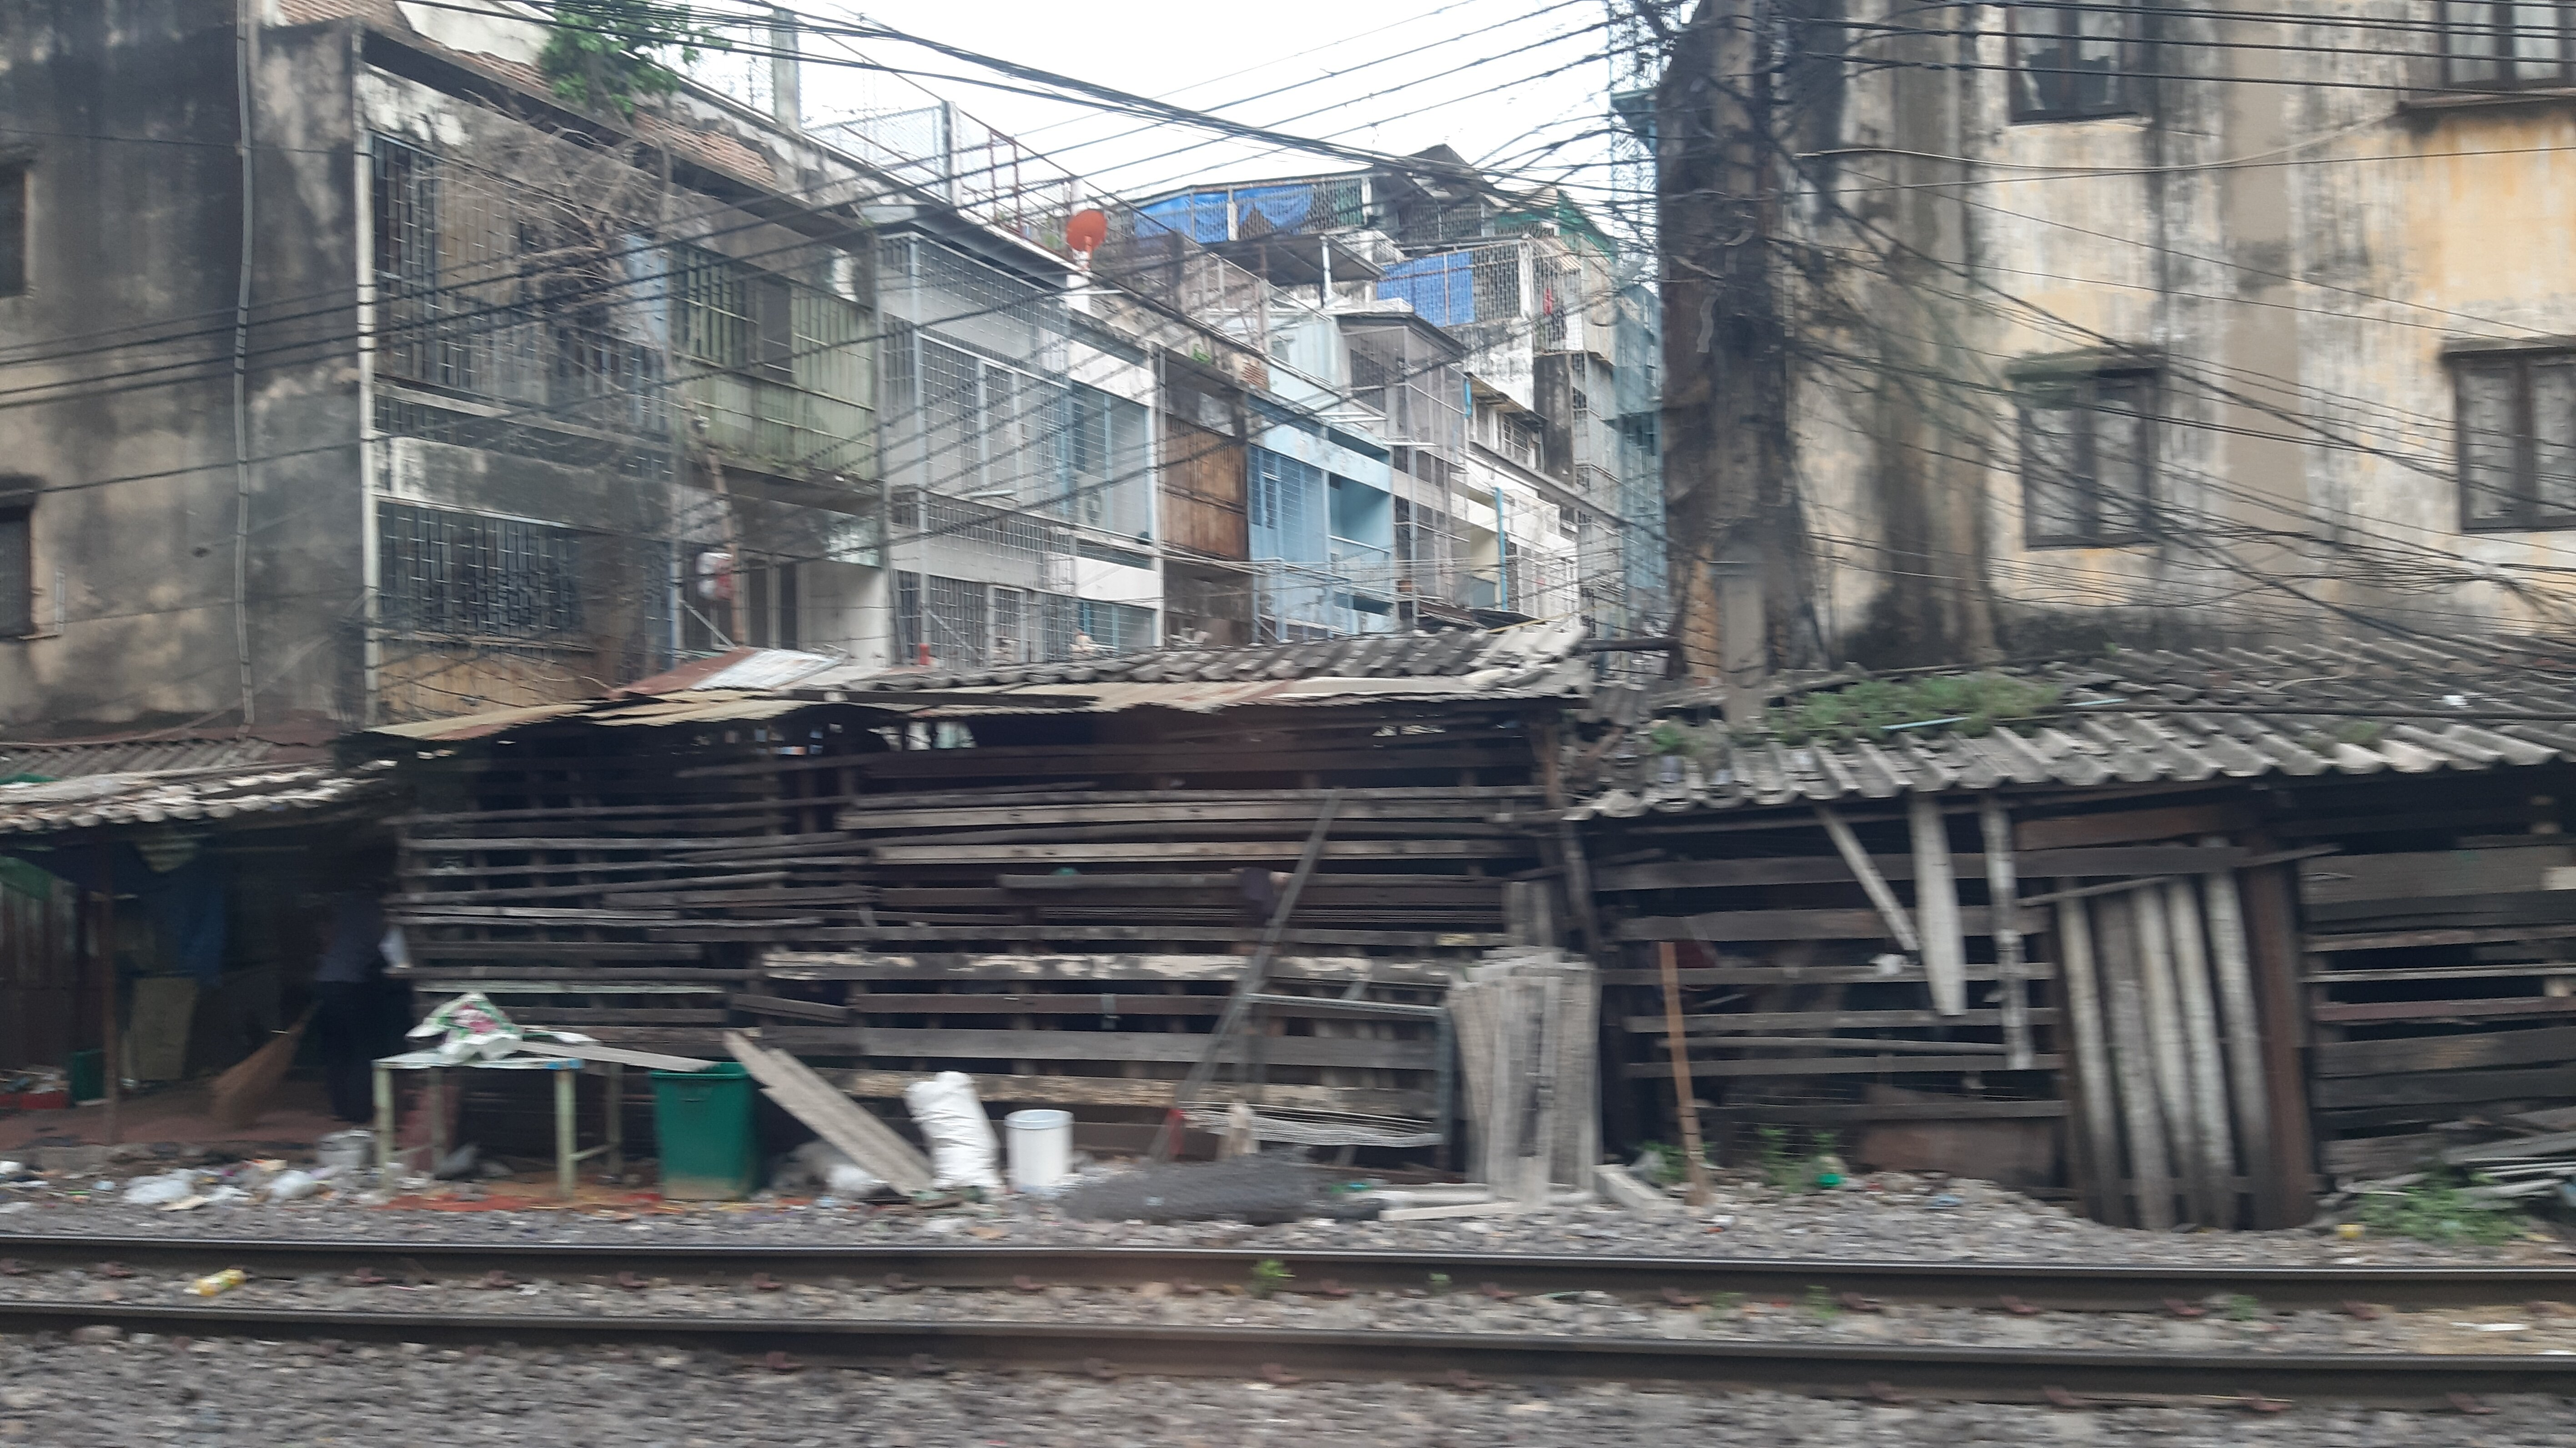 Shacks and apartments by the side of the road. A man can be seen sweeping at the left of the frame.